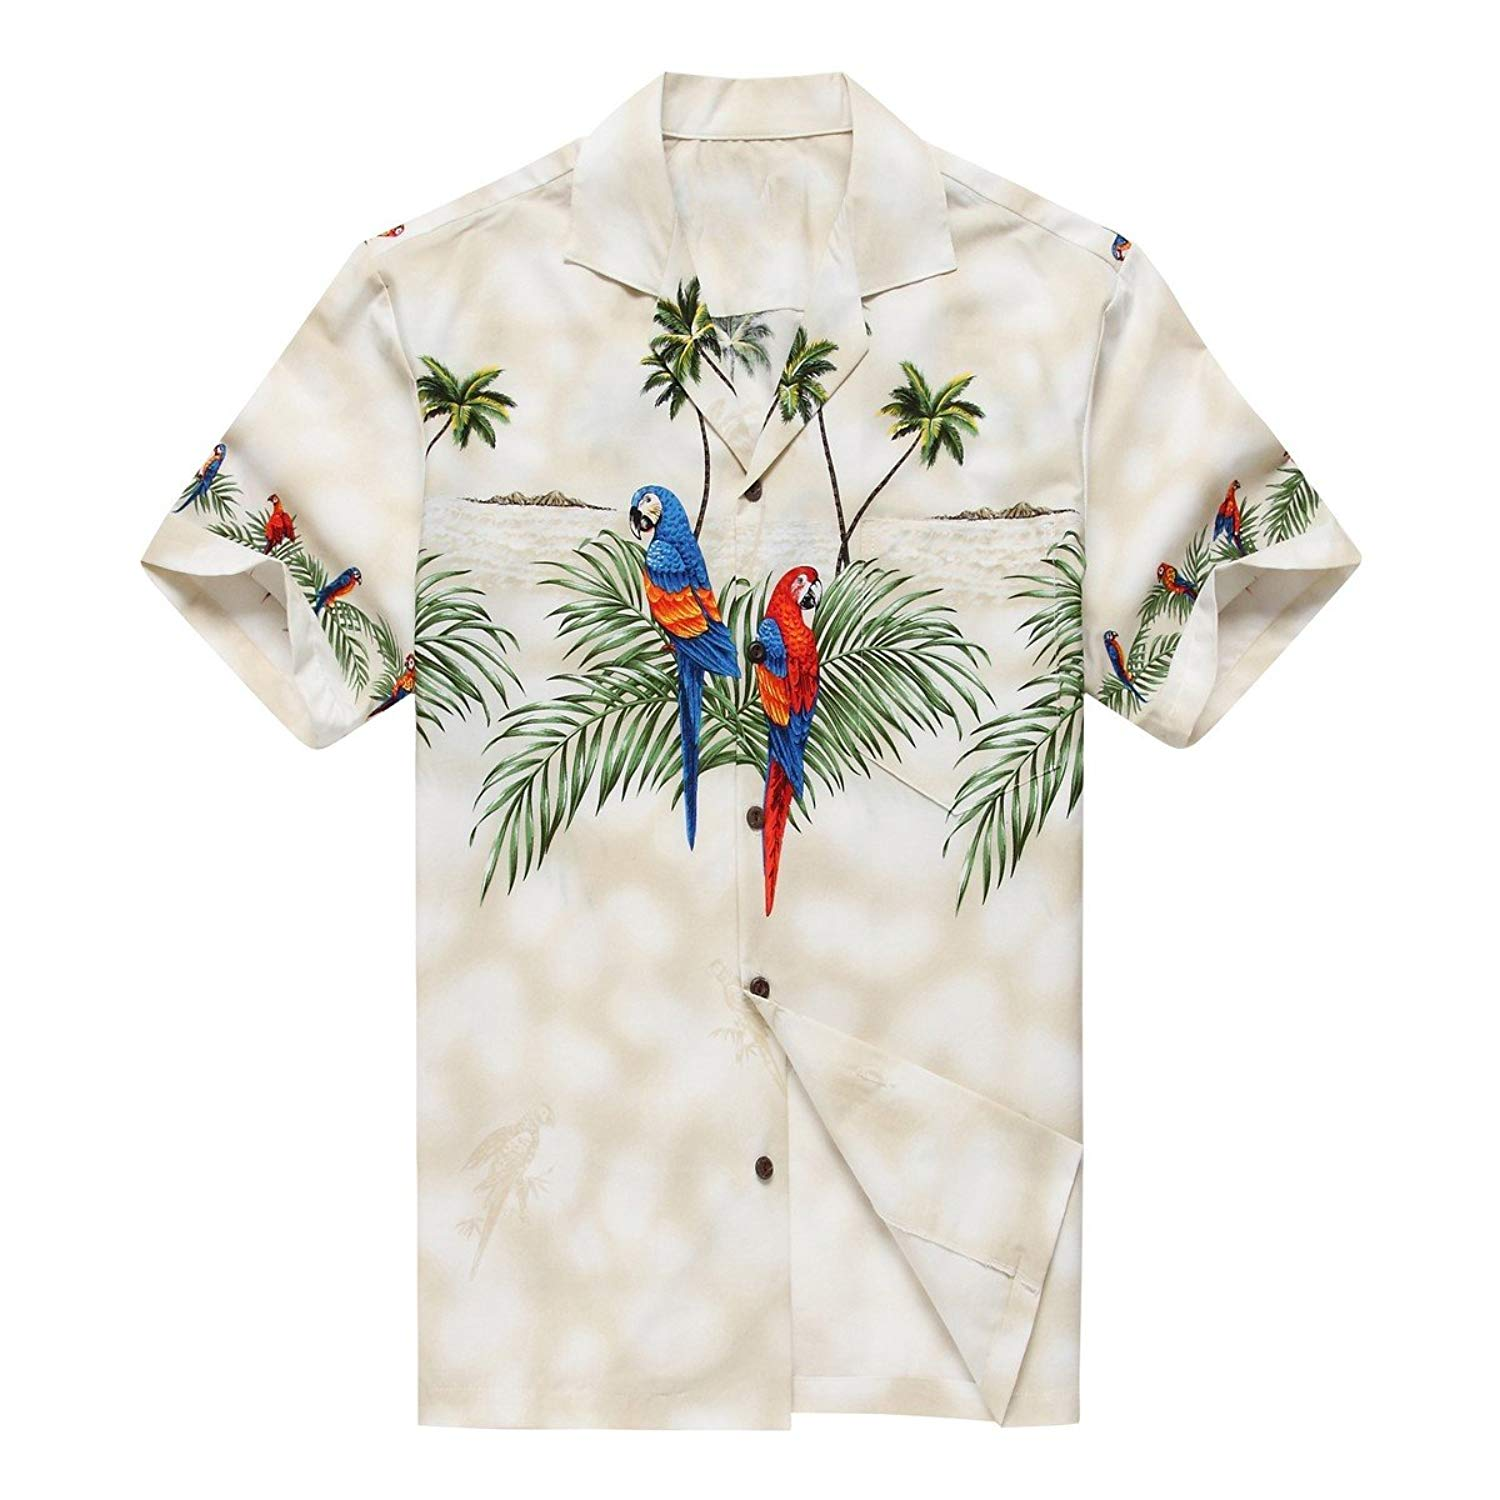 99d5a241 Get Quotations · Made in Hawaii Boy Young Adult Luau Aloha Shirt Hawaiian  Shirt in Parrots and Palms Matching